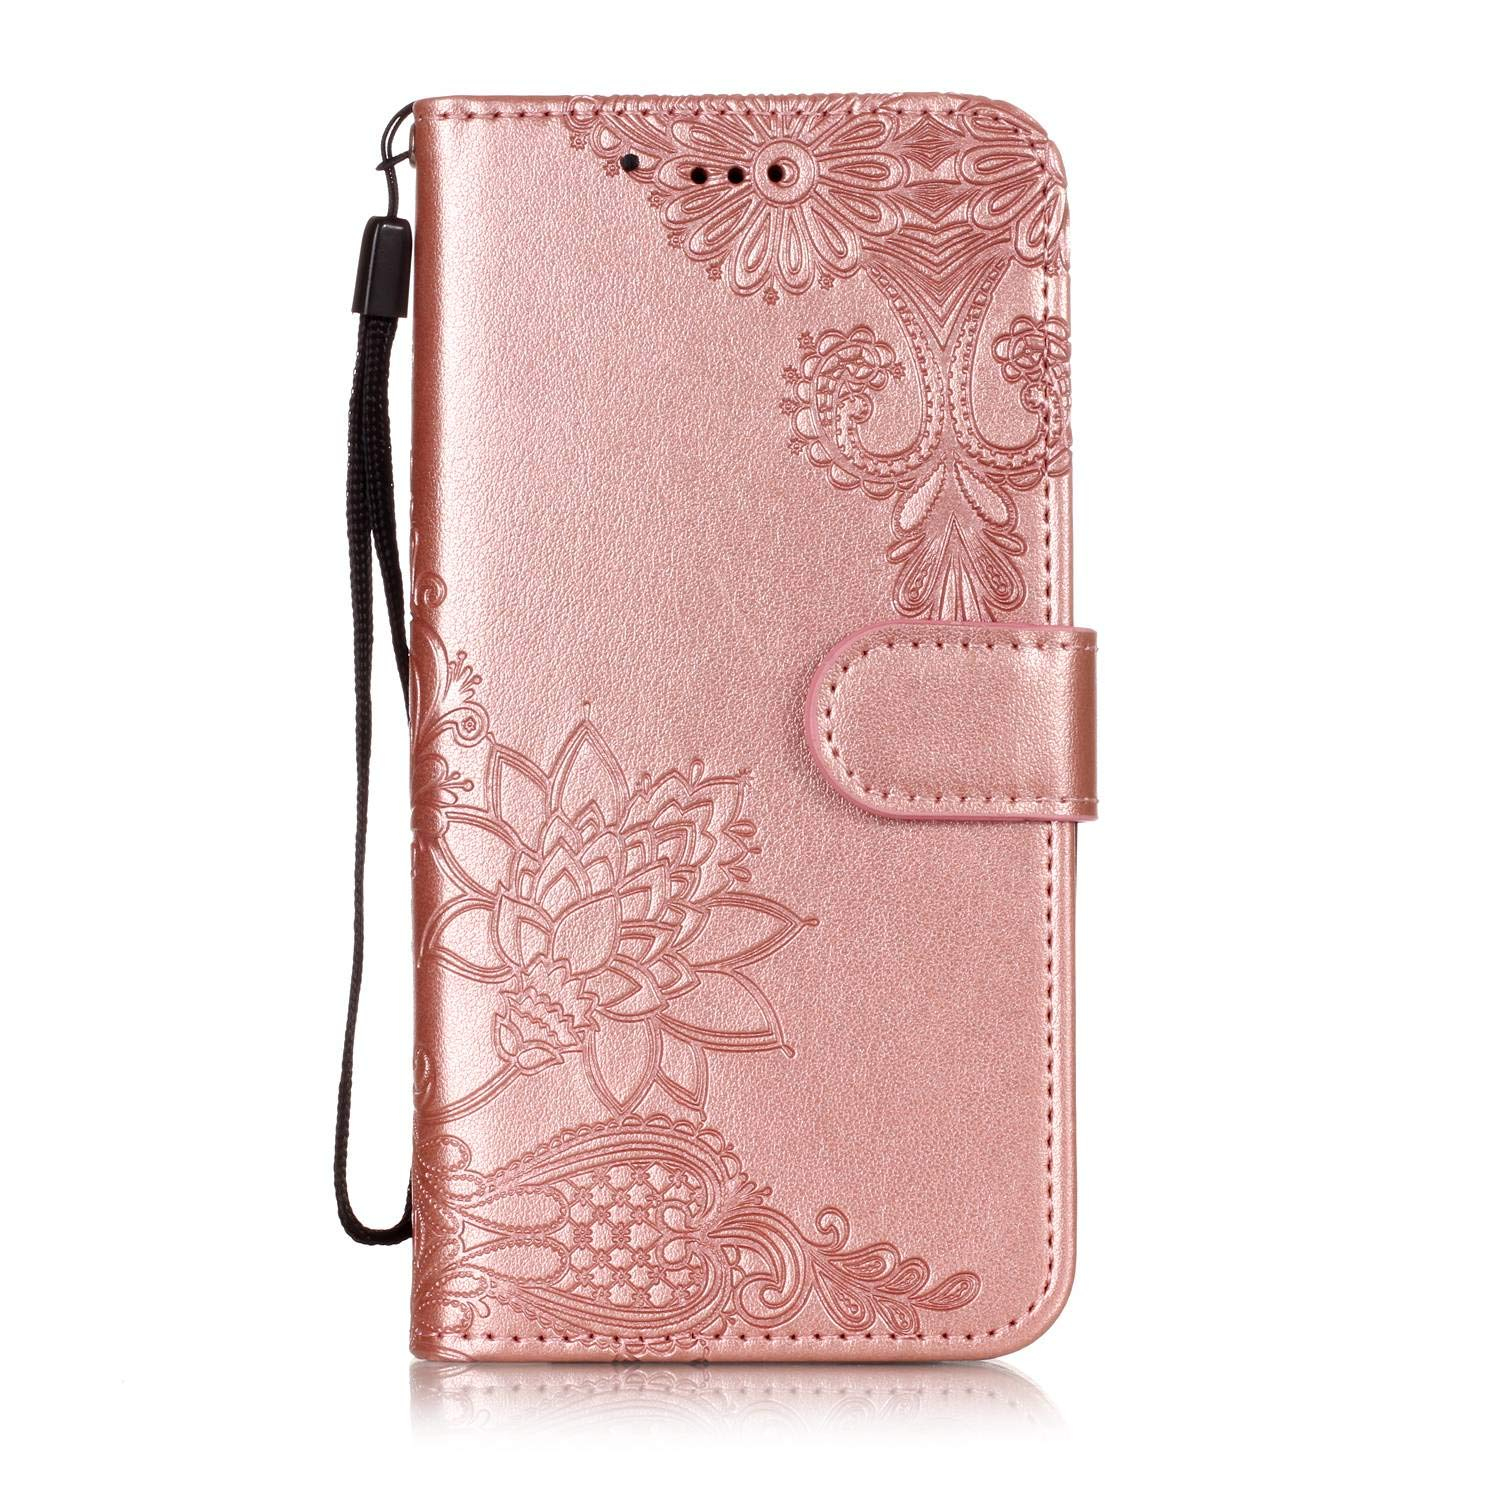 AIIYG DS,LG K30 Case,LG Premier Pro LTE/Phoenix Plus Wallet Case,Classic 3D Mandala Pattern [Kickstand Feature] Flip Folio Leather Wallet Case with ID and Credit Card Pockets For LG K10 2018/Rose Gold by AIIYG DS (Image #1)